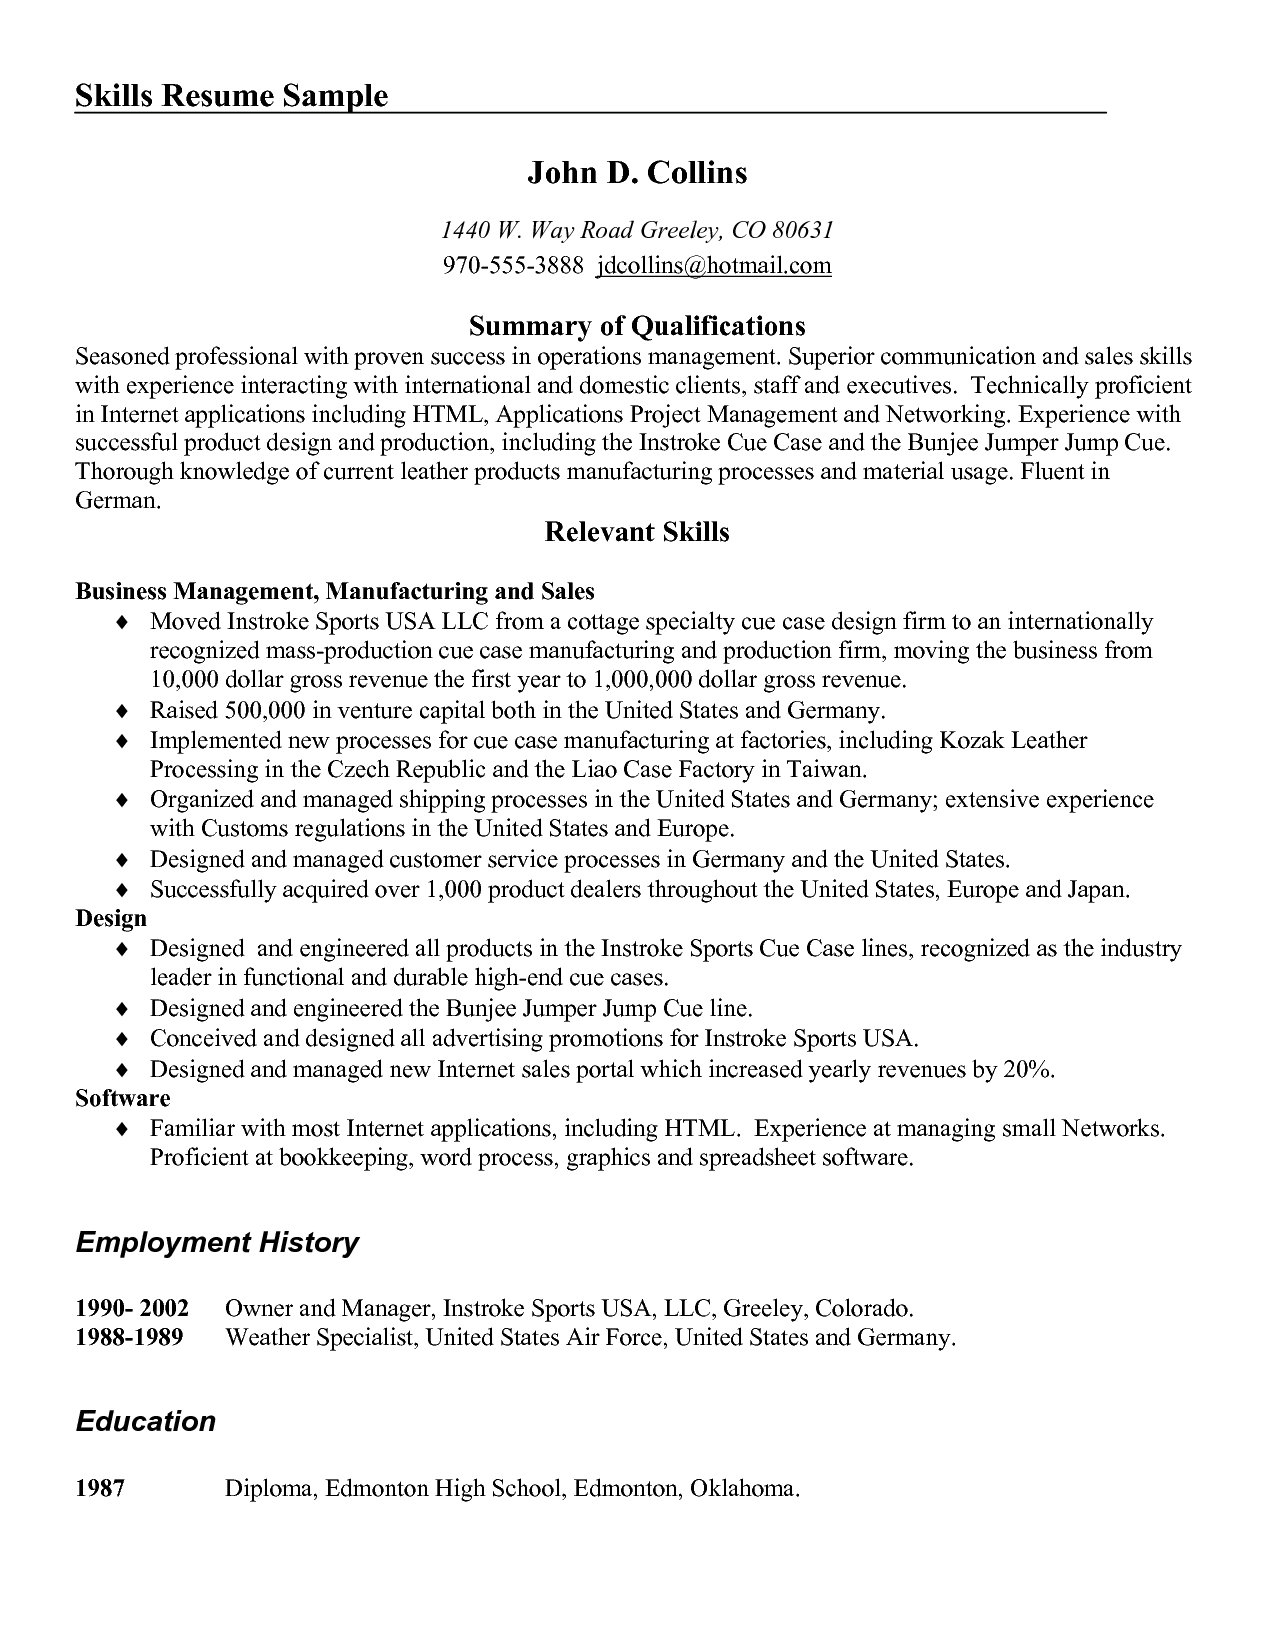 Resume Examples Skills Awesome Image Result For Skill Based Resume Examples  Business Design Ideas